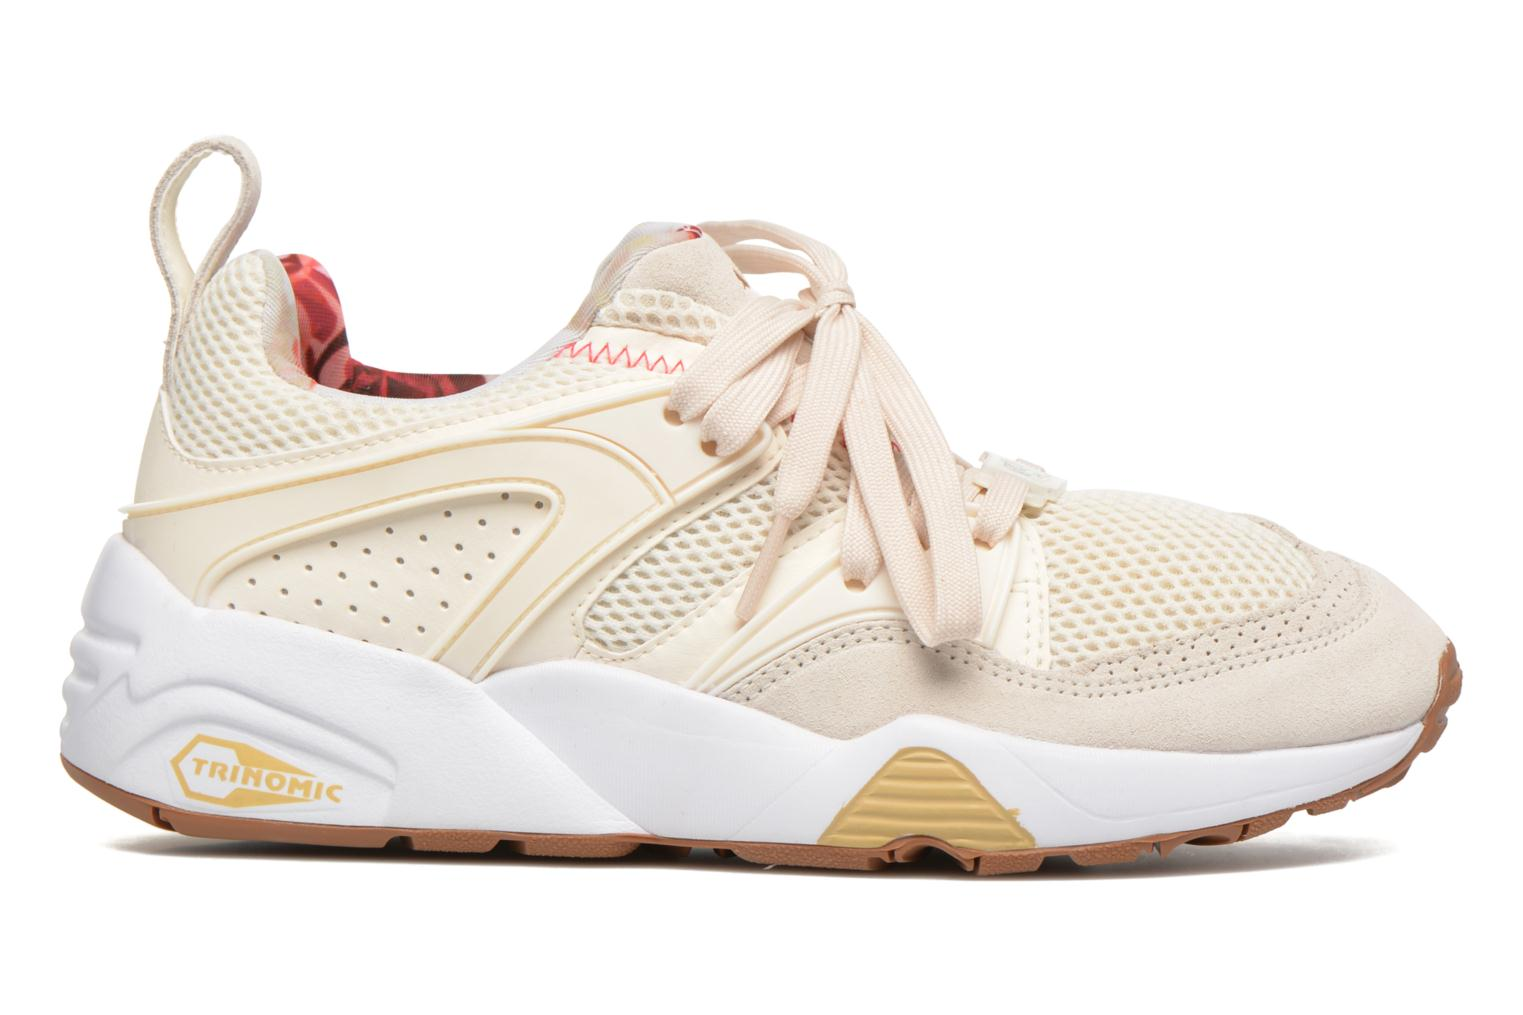 Trinomic Blaze Of Glory X Careaux White